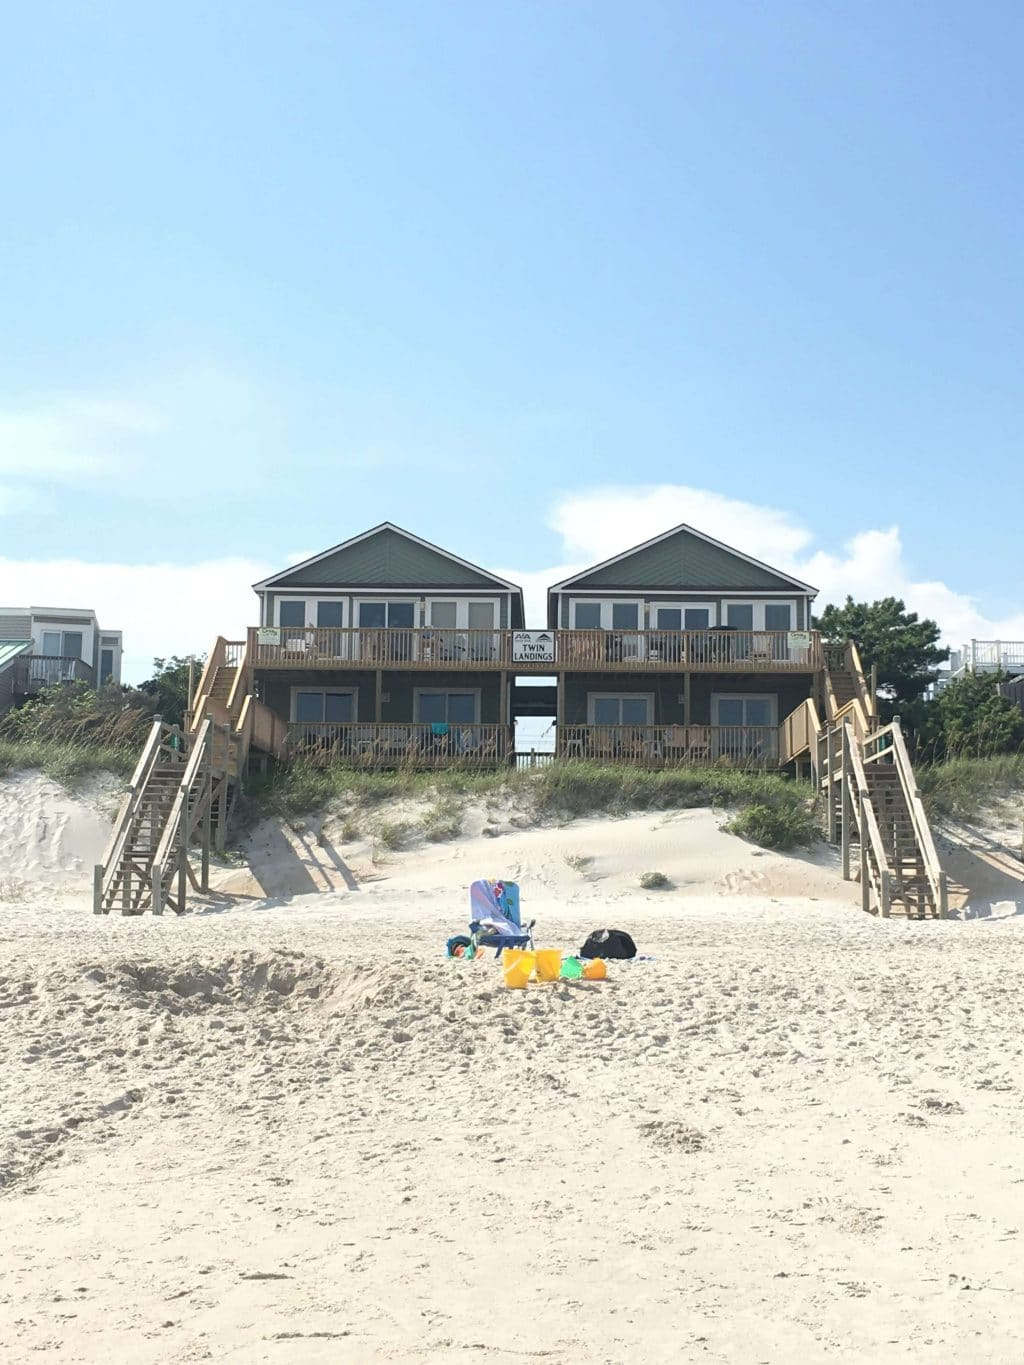 Topsail North Carolina Vacation, Stilettos and Diapers, Family travel